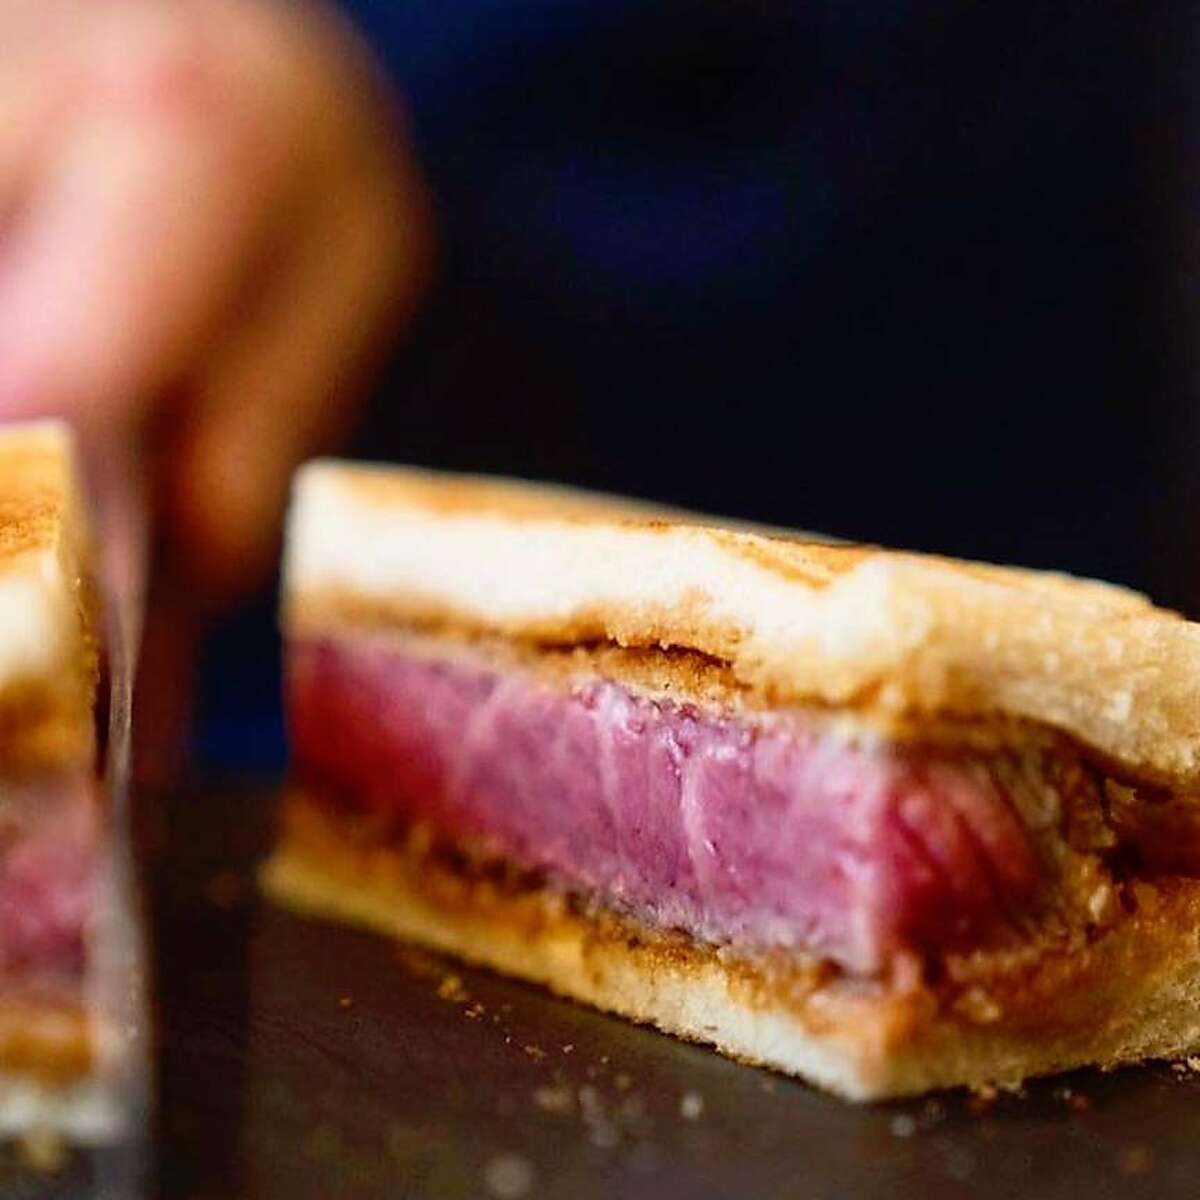 Wafyumafia, with its $180 wagyu beef sandwich, is looking to open in San Francisco.